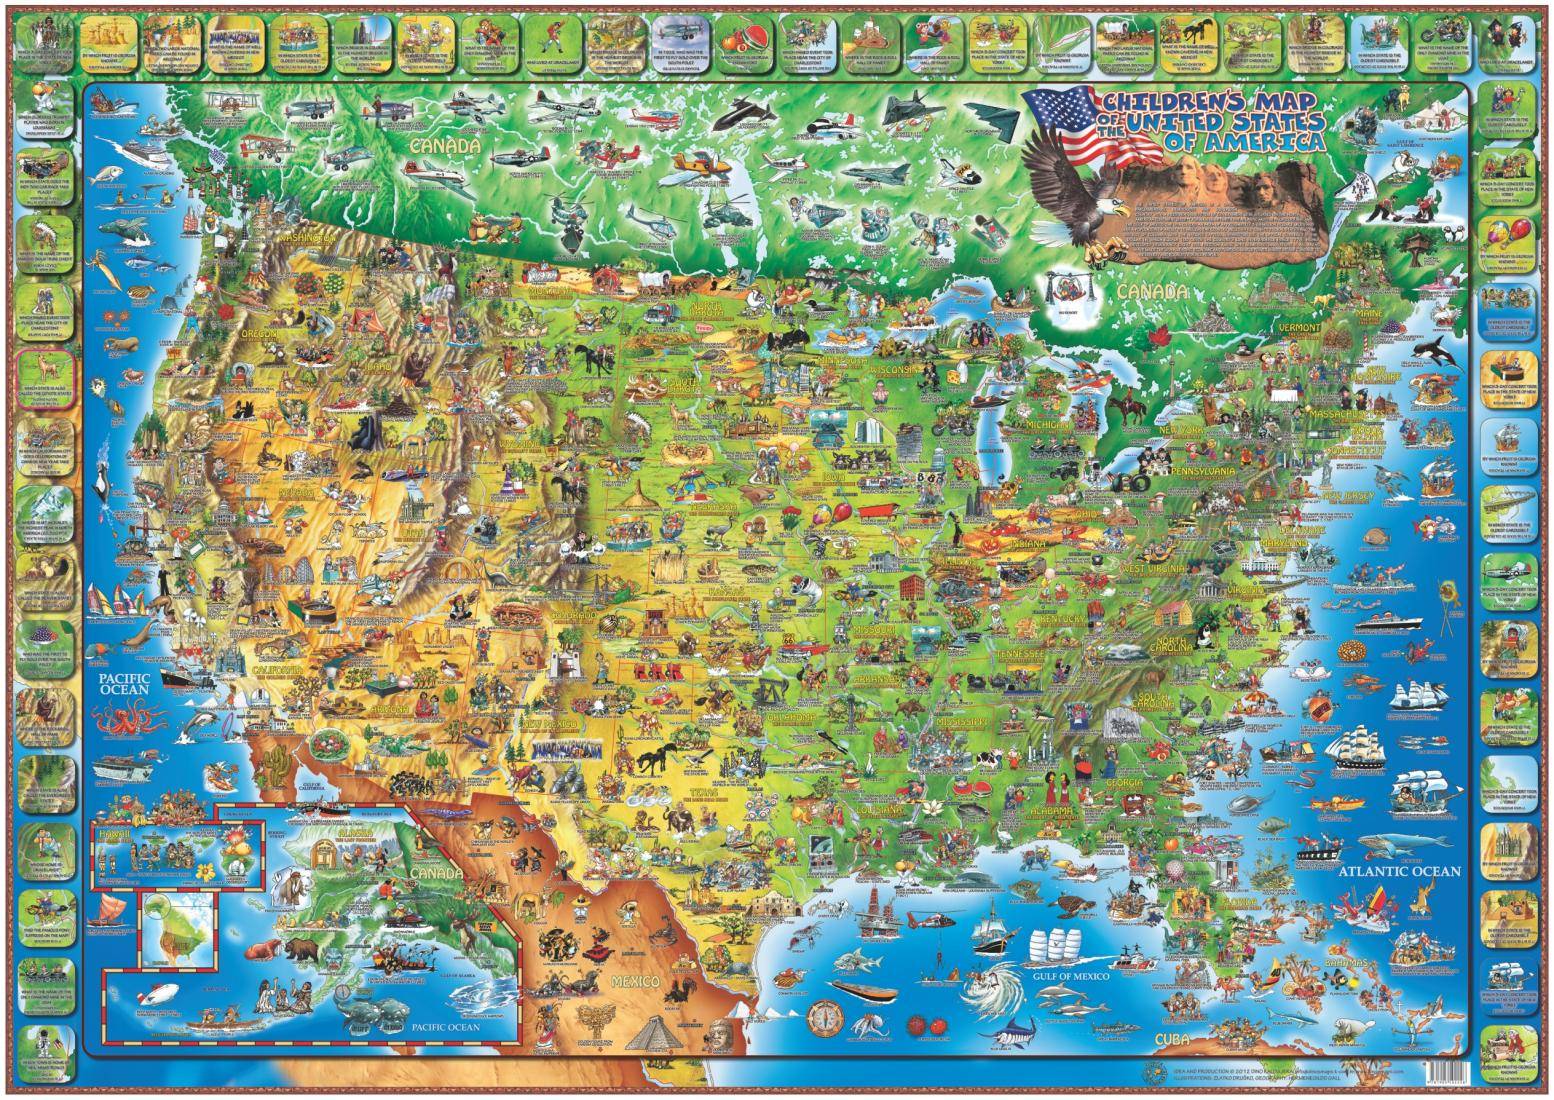 Dino\'s Illustrated Map of the USA by Dino Maps